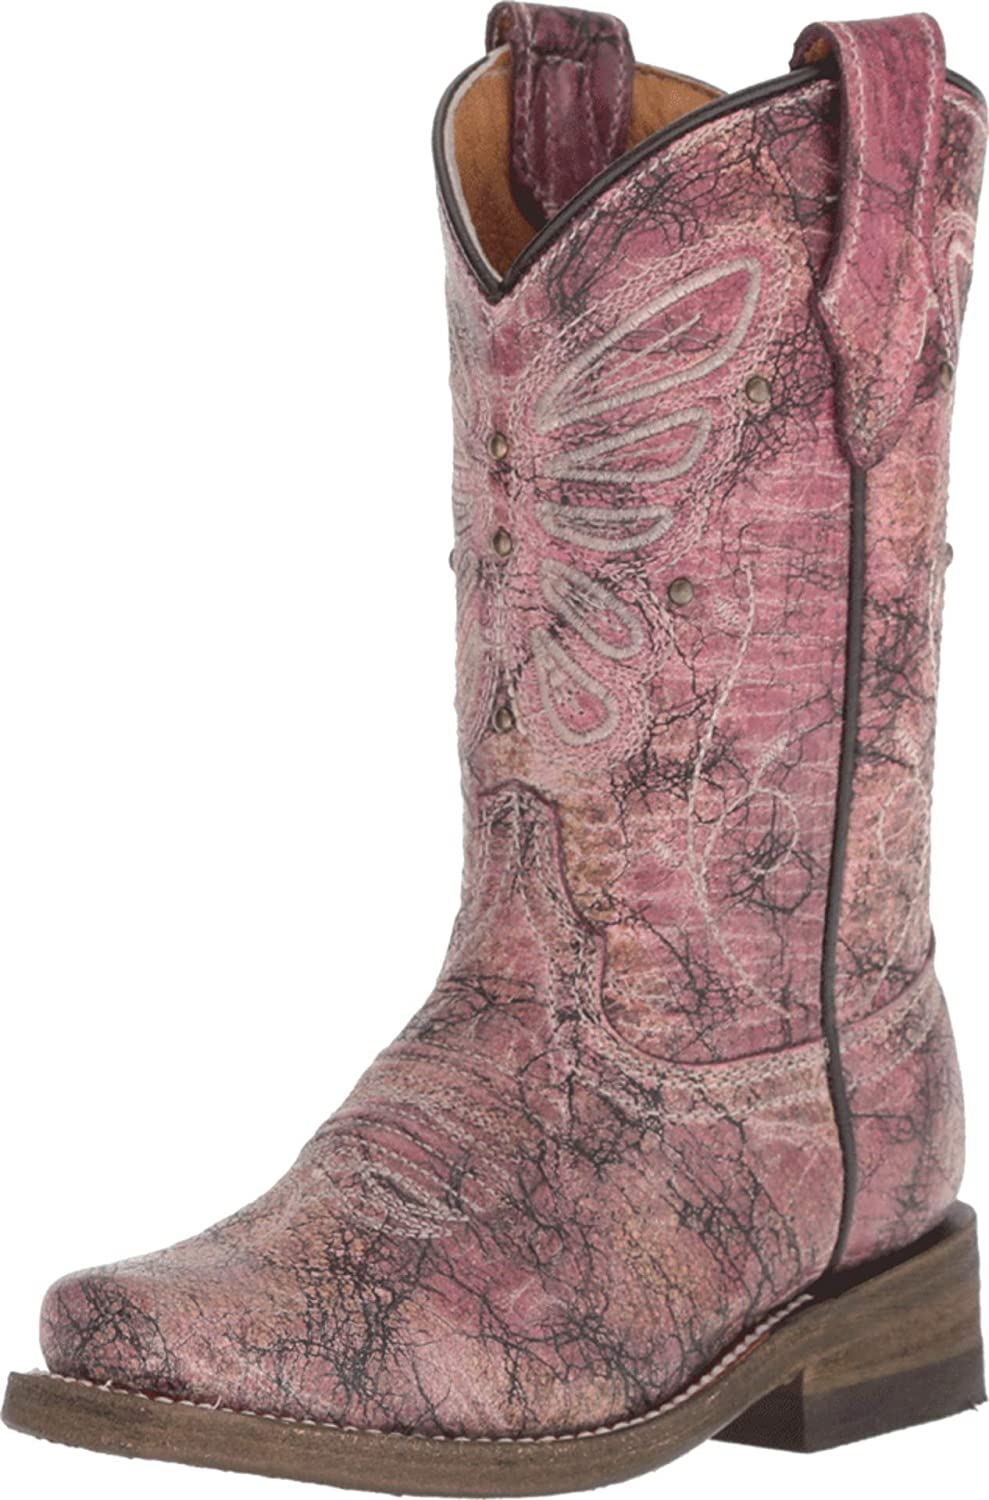 Corral Boots Kids Unisex-Child Western Boots